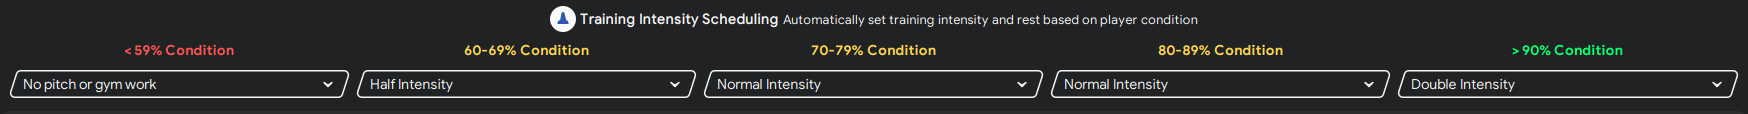 Football Manager training intensity scheduling